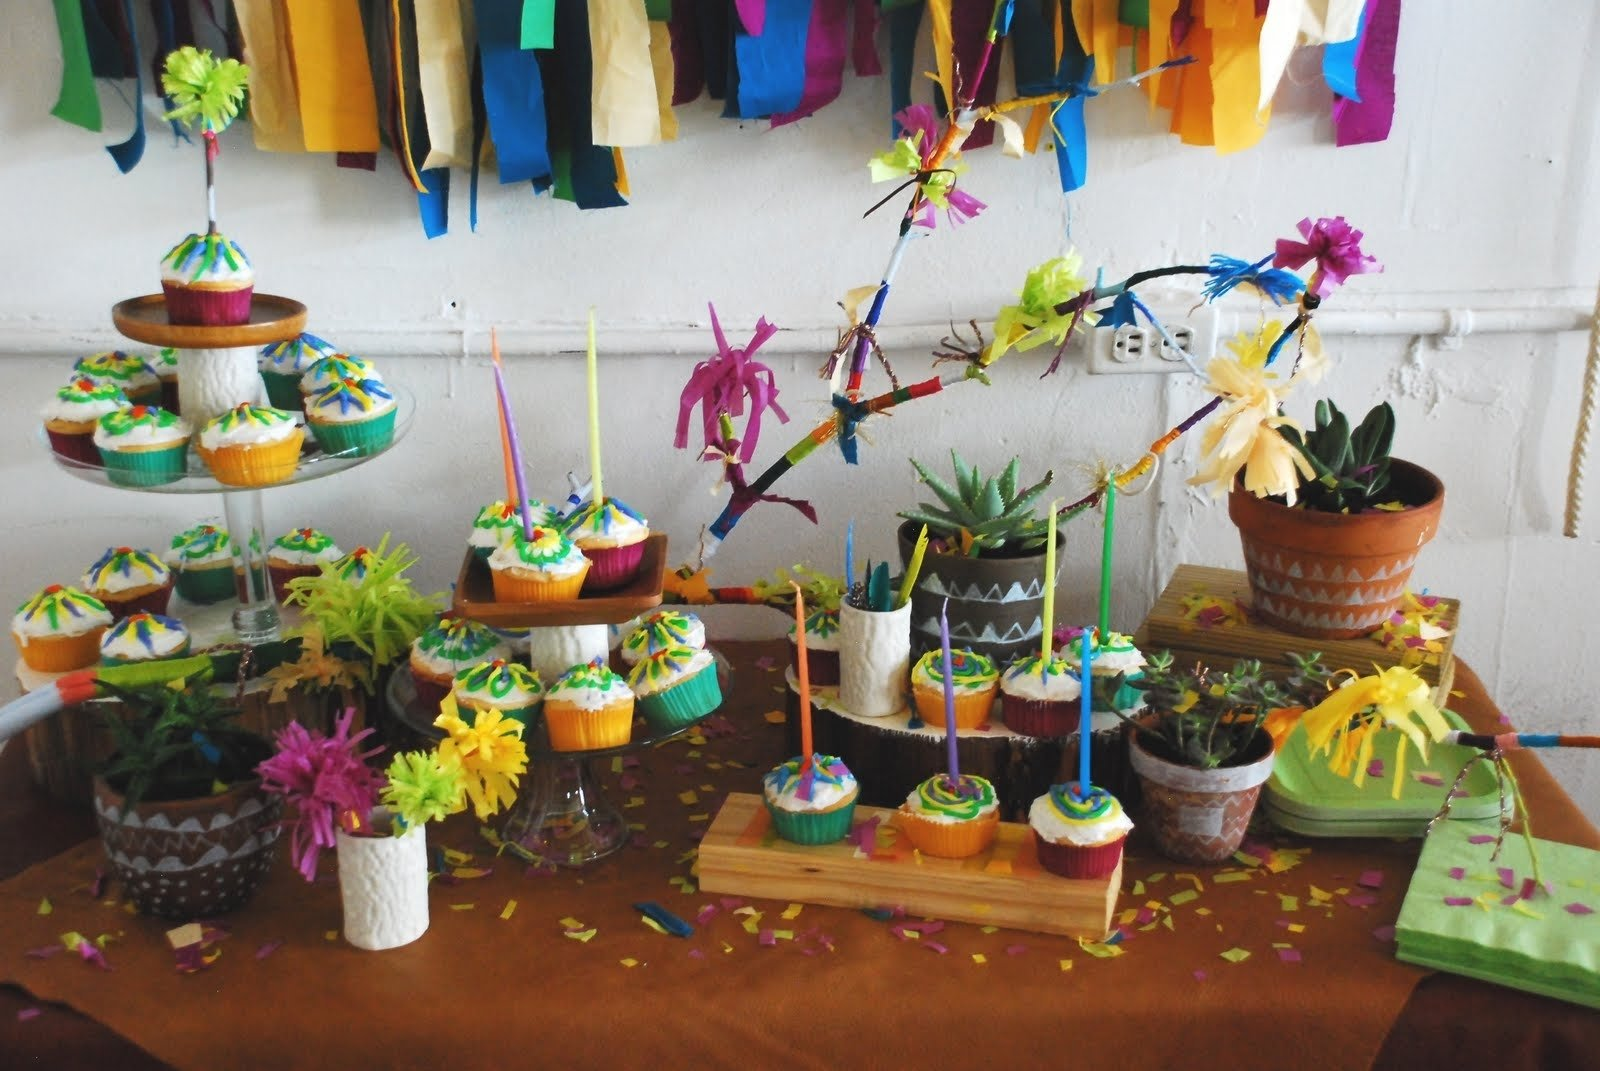 10 Famous Birthday Party Ideas For 13 Year Old Boys themes birthday good ideas for a 13 year old birthday party boy 3